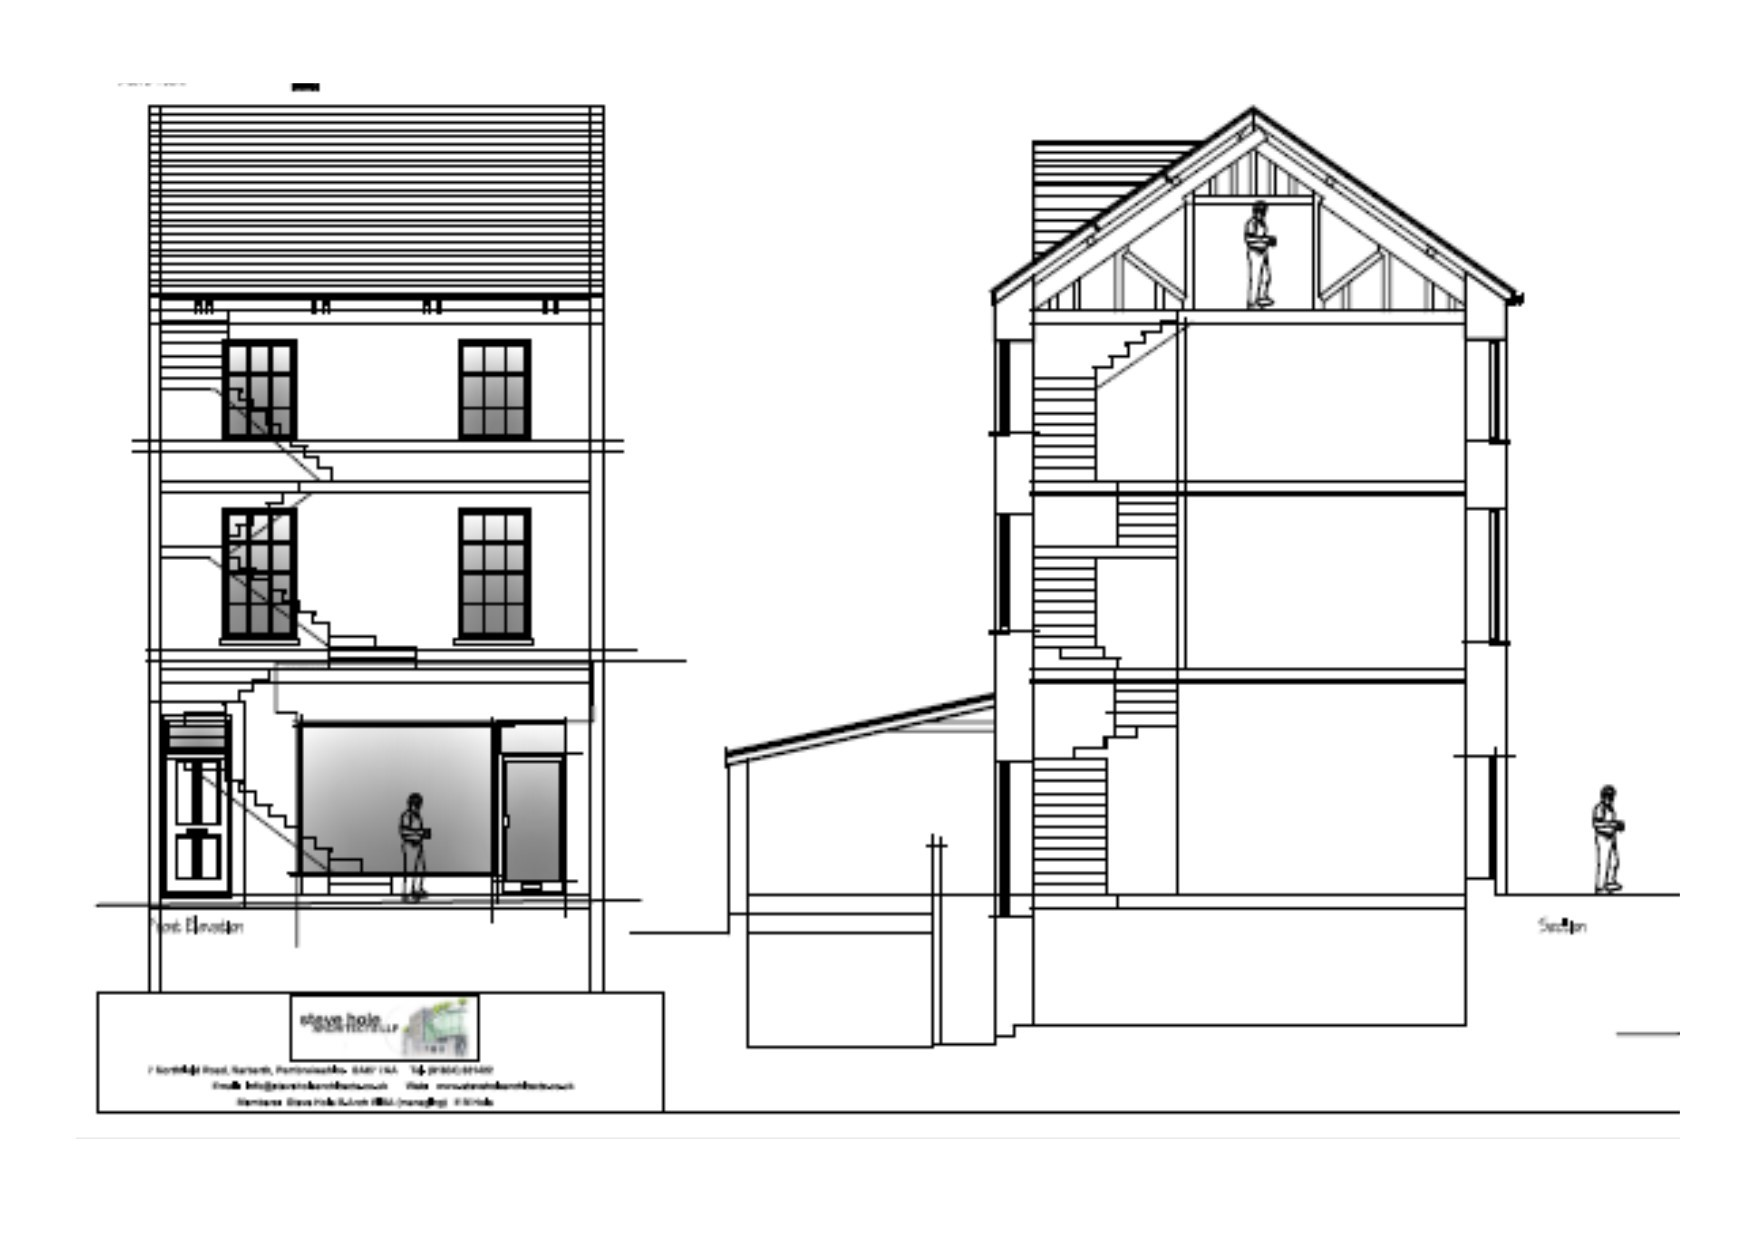 Plans for 4 Victoria Place. The upper floors of the building could be converted into a flat. PICTURE: PCC Planning.